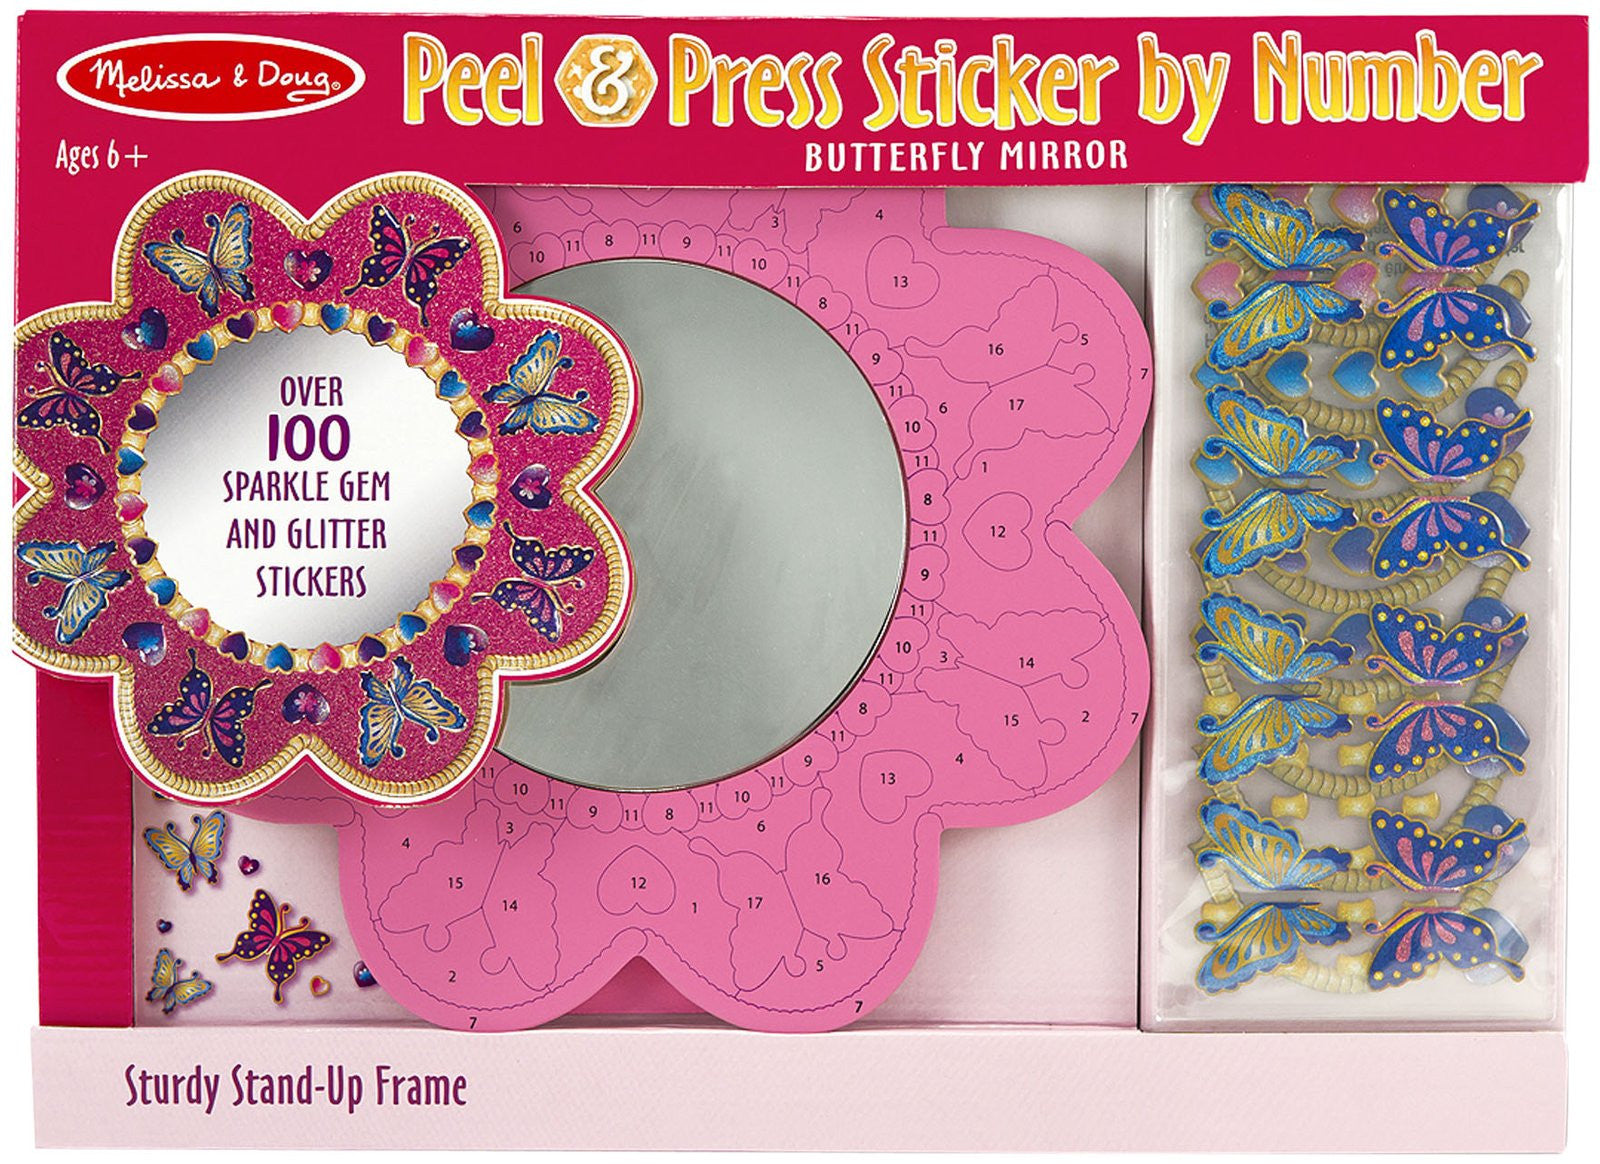 Melissa & Doug Peel & Press Sticker by Number - Butterfly Mirror